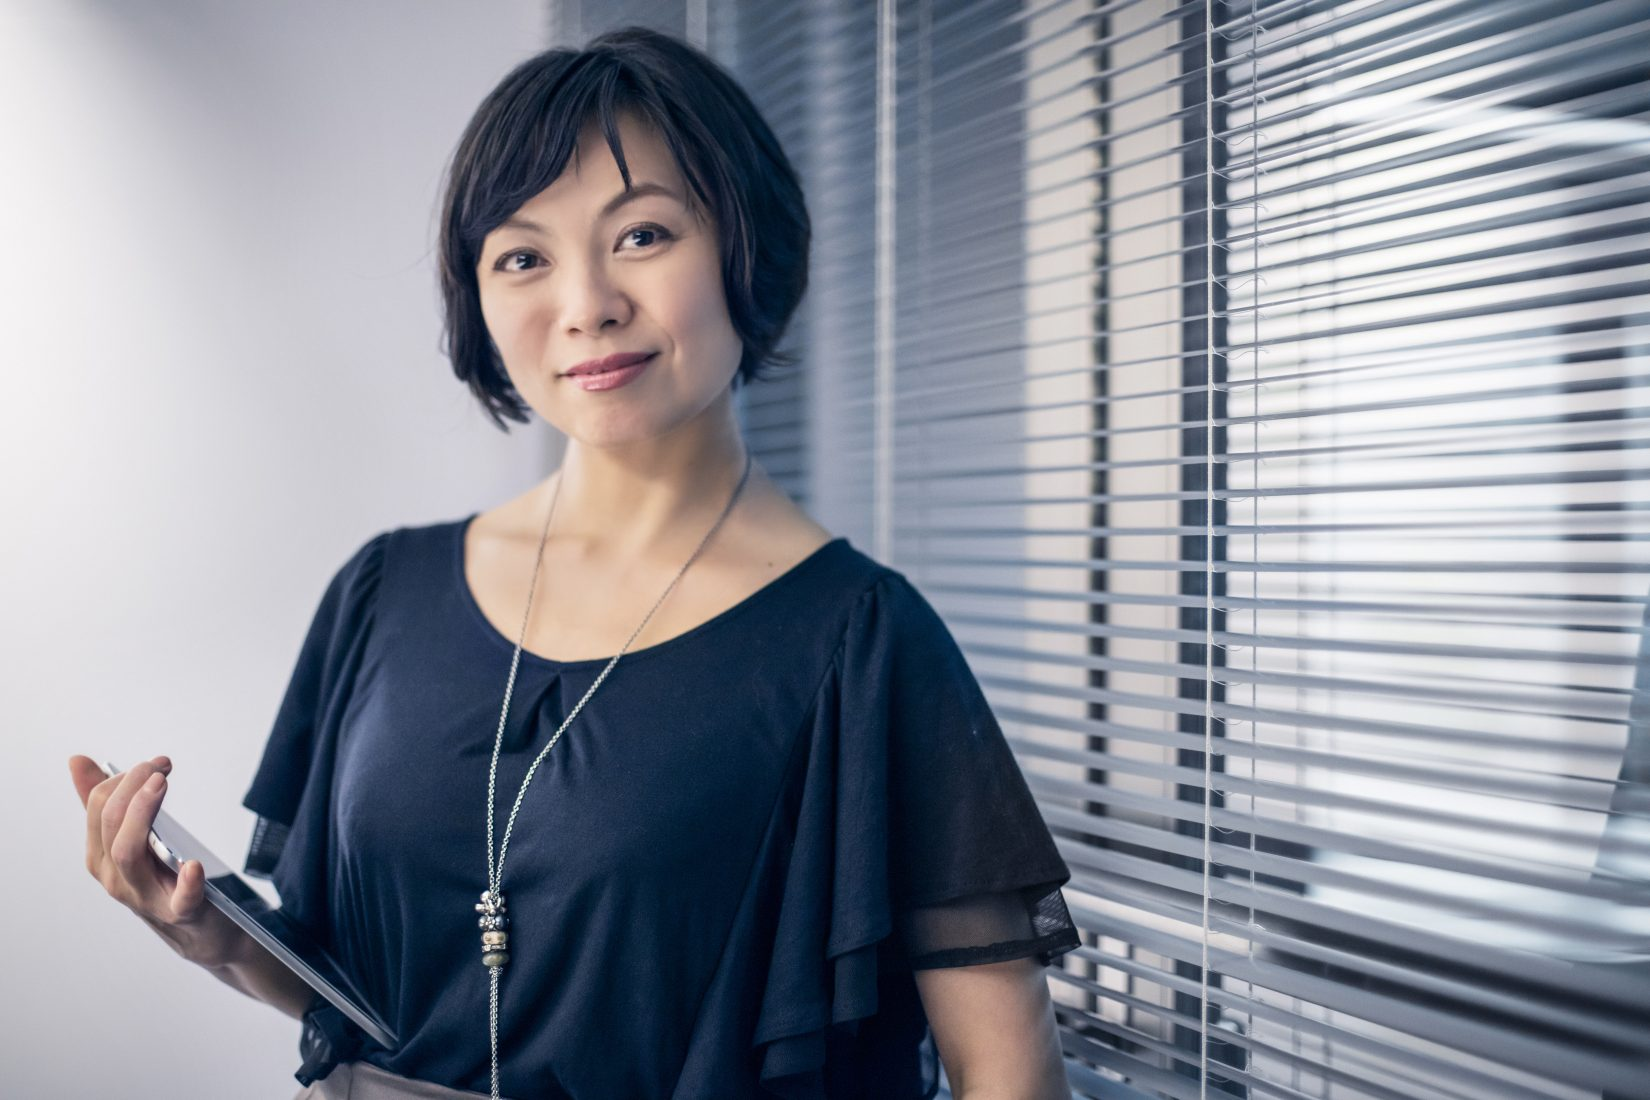 Portrait of mature businesswoman holding digital tablet by blinds. Confident female professionals is holding wireless technology. She is wearing formals in office.